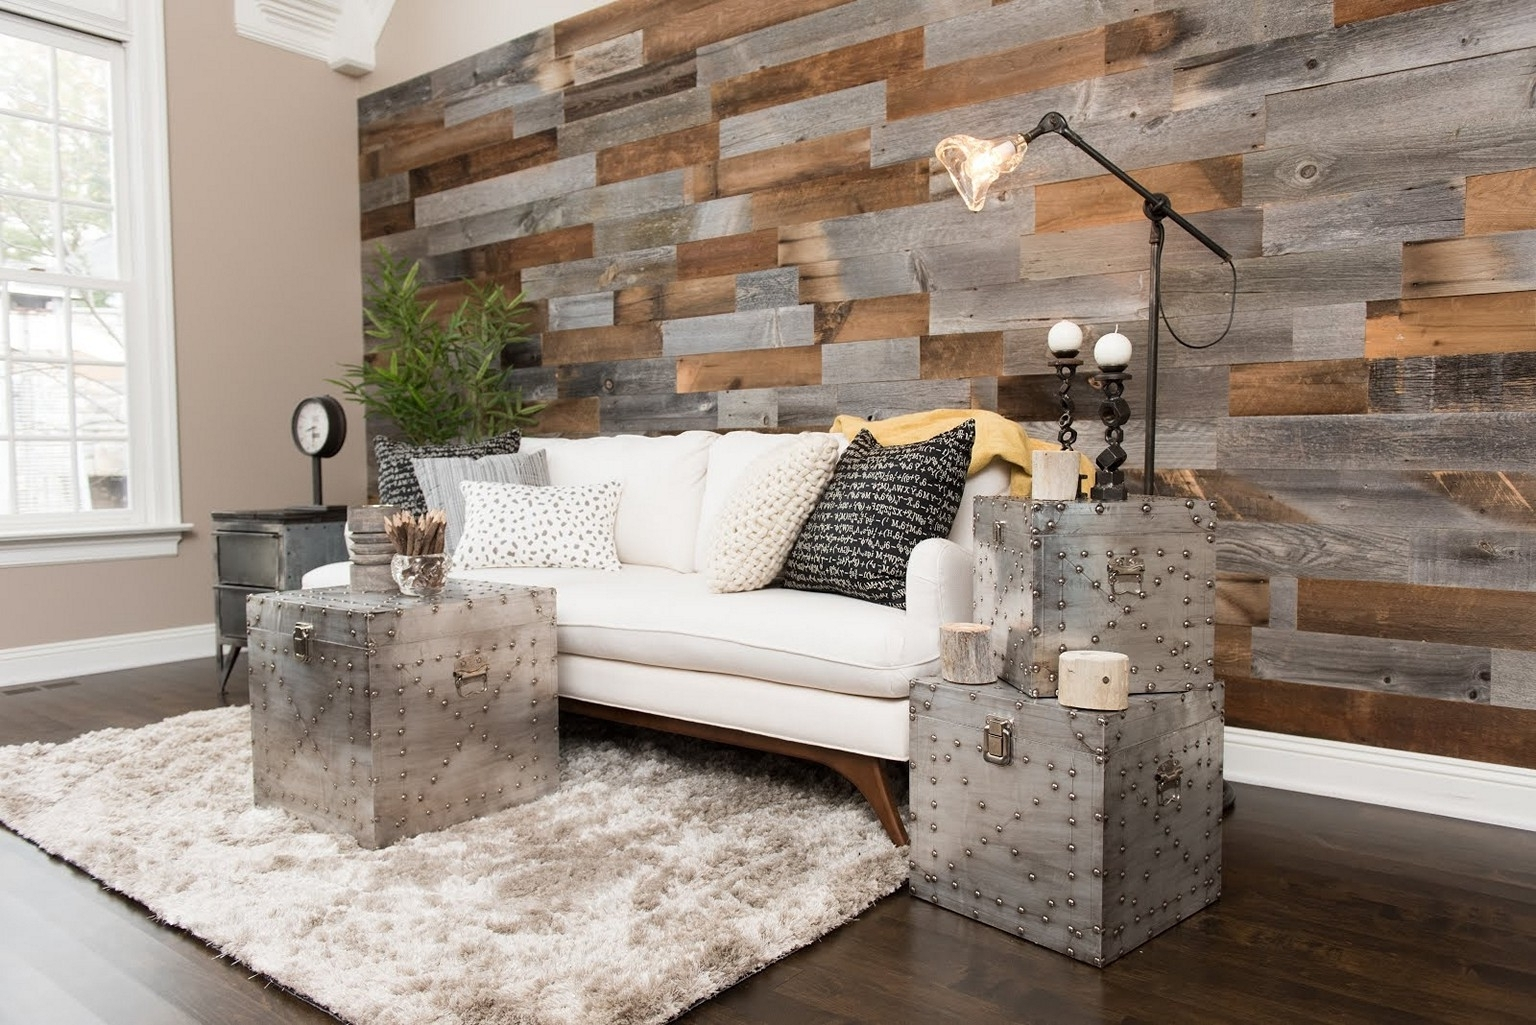 Barn Wood Wall Ideas • Walls Ideas Pertaining To Popular Wood Wall Accents (View 3 of 15)